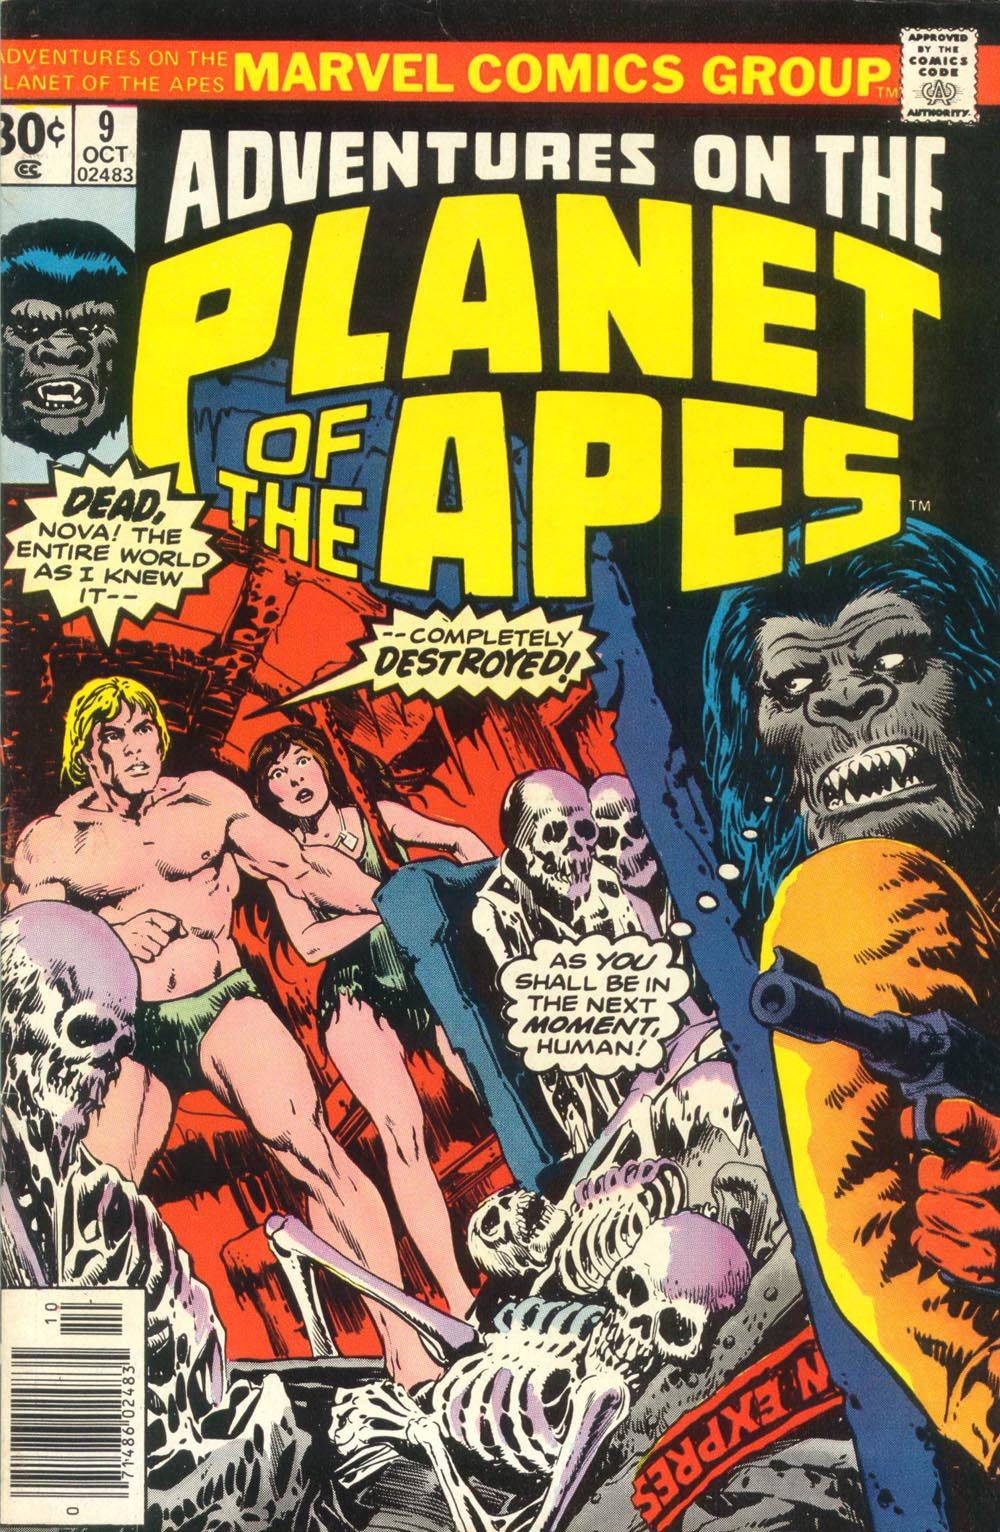 Adventures on the Planet of the Apes 9 Page 1